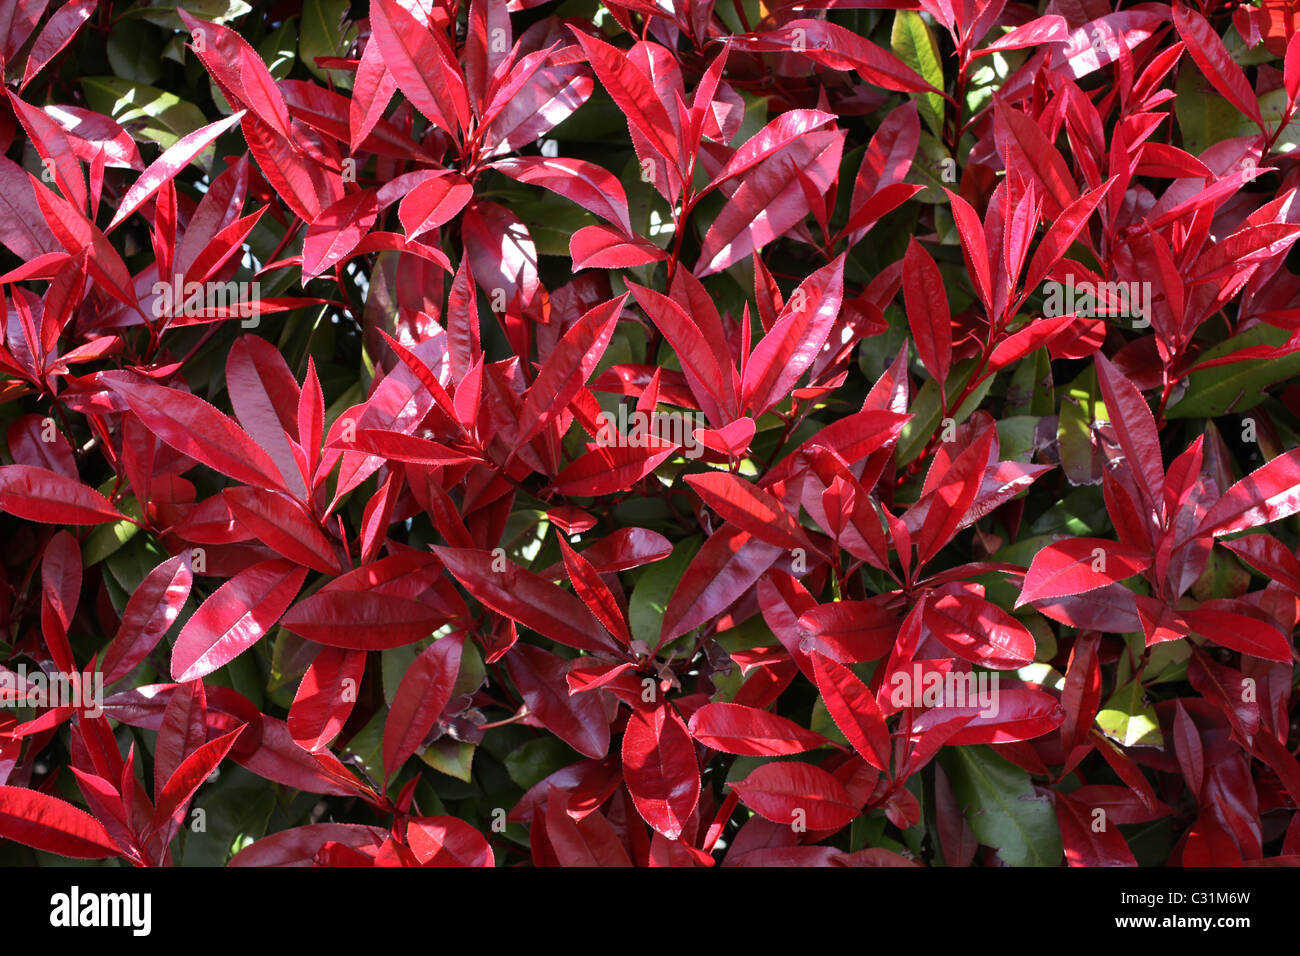 Red Robin, shrub in spring with red leaves Stock Photo